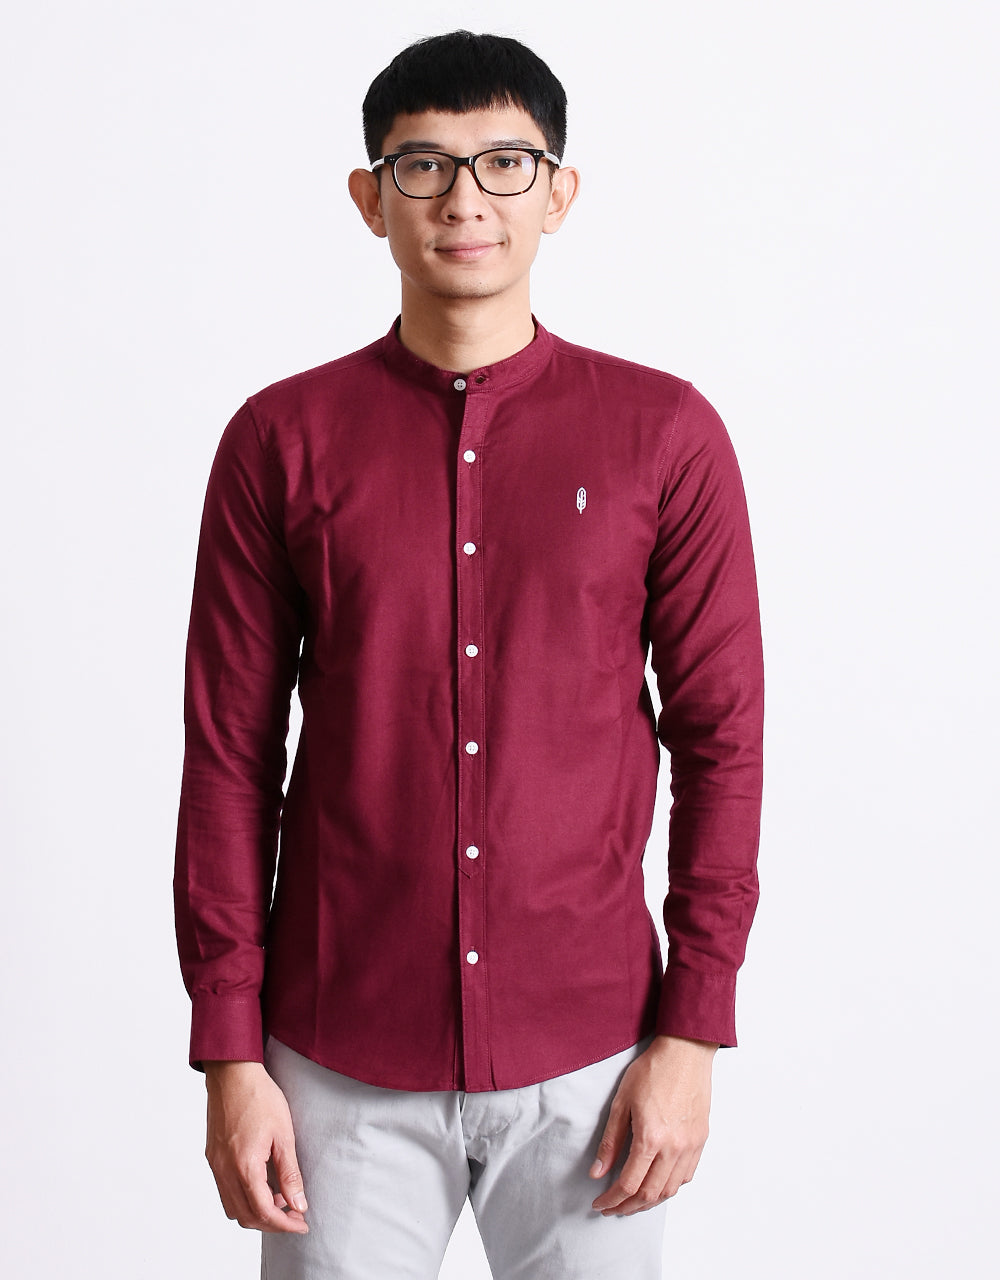 Inelabolate 3 Mandarin Collar Shirt